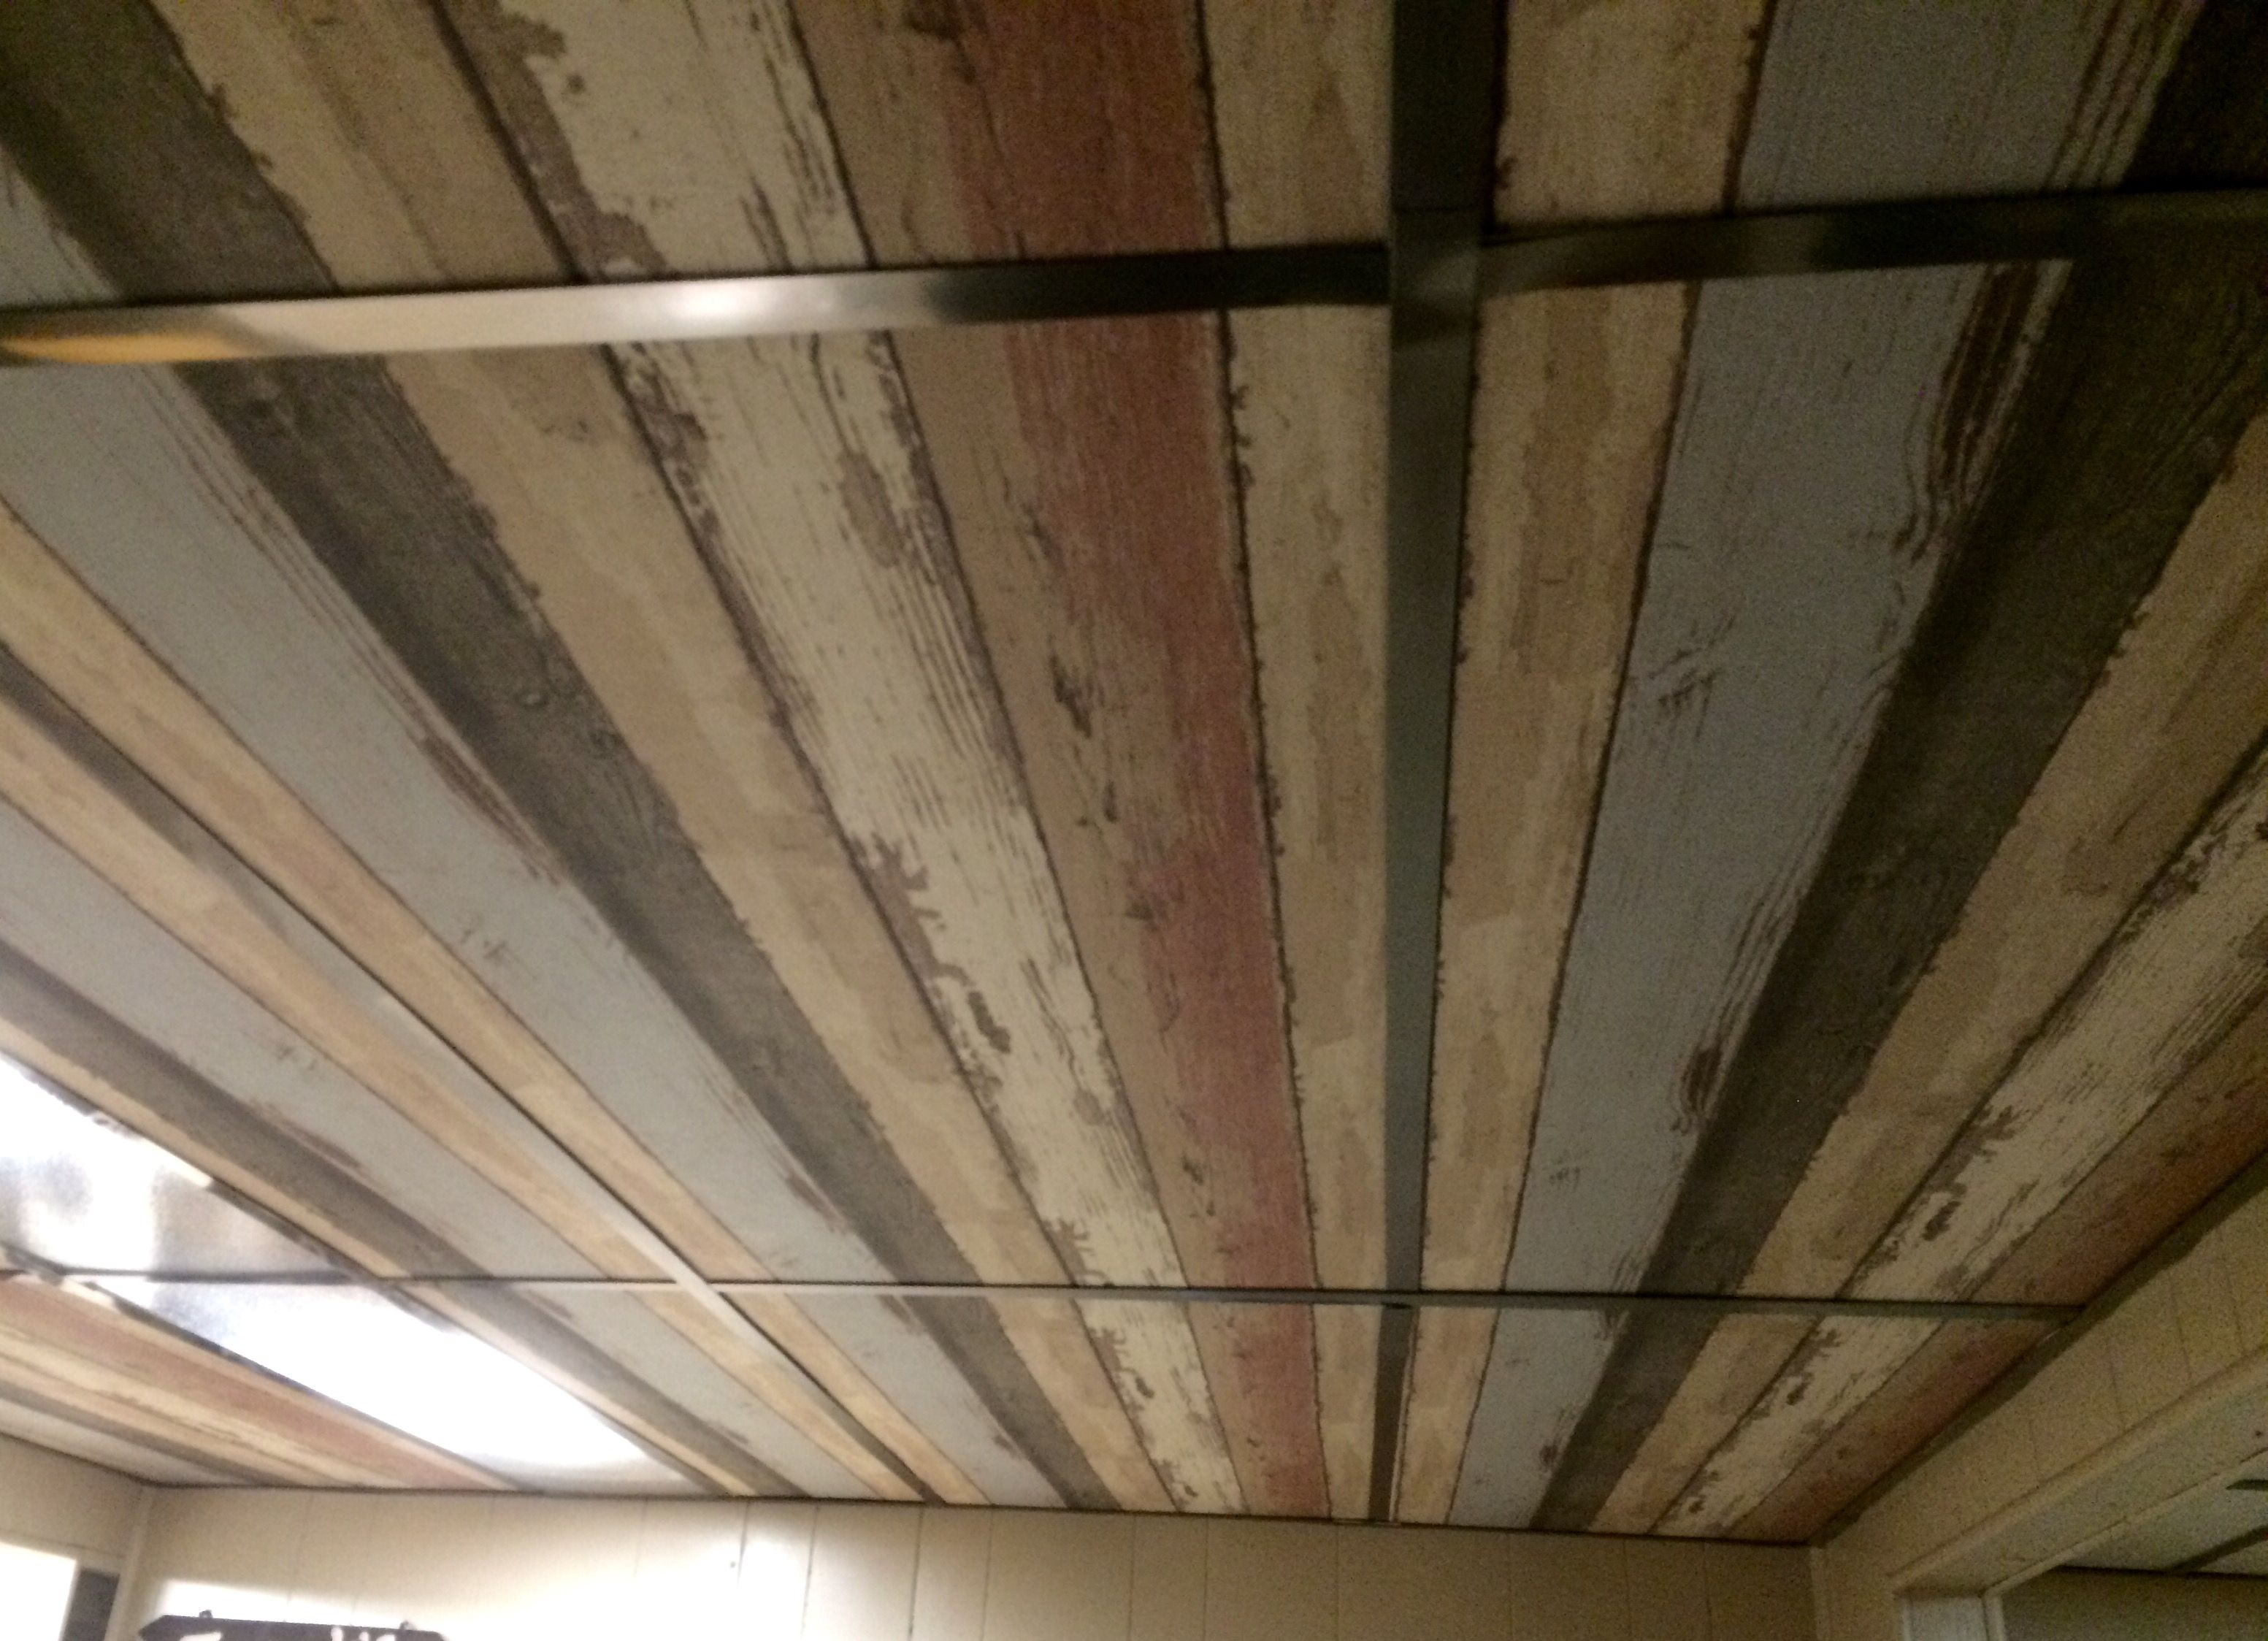 Dropped ceiling I wallpapered the old ceiling tiles I covered the